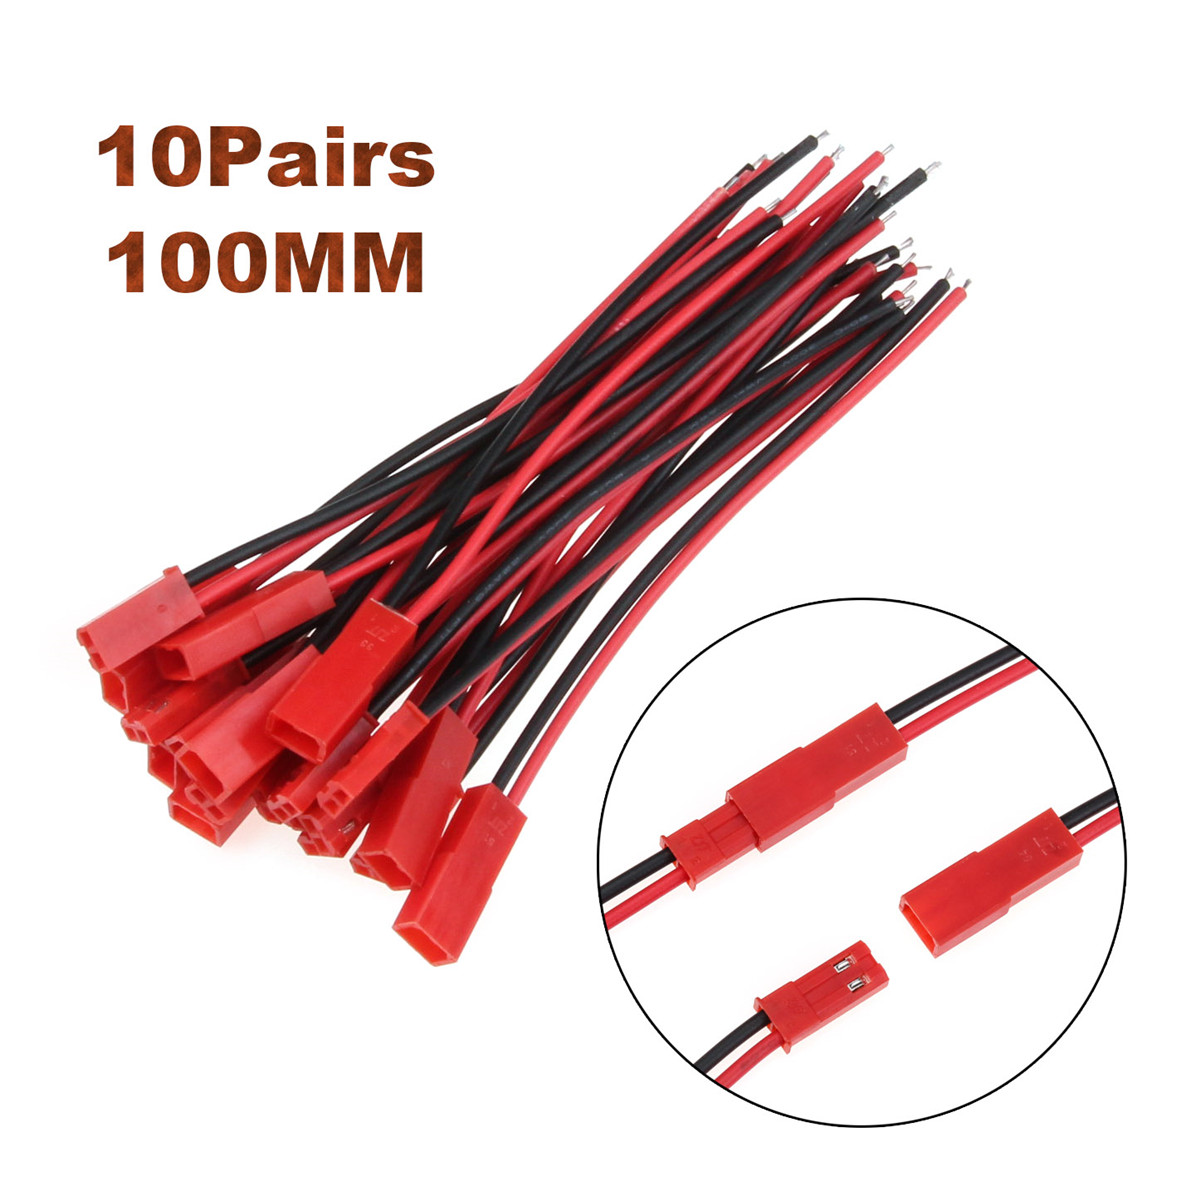 10 Pair 100mm JST CONNECTOR Male+Female PLUG Cable Cord for RC BEC LIPO BATTERY